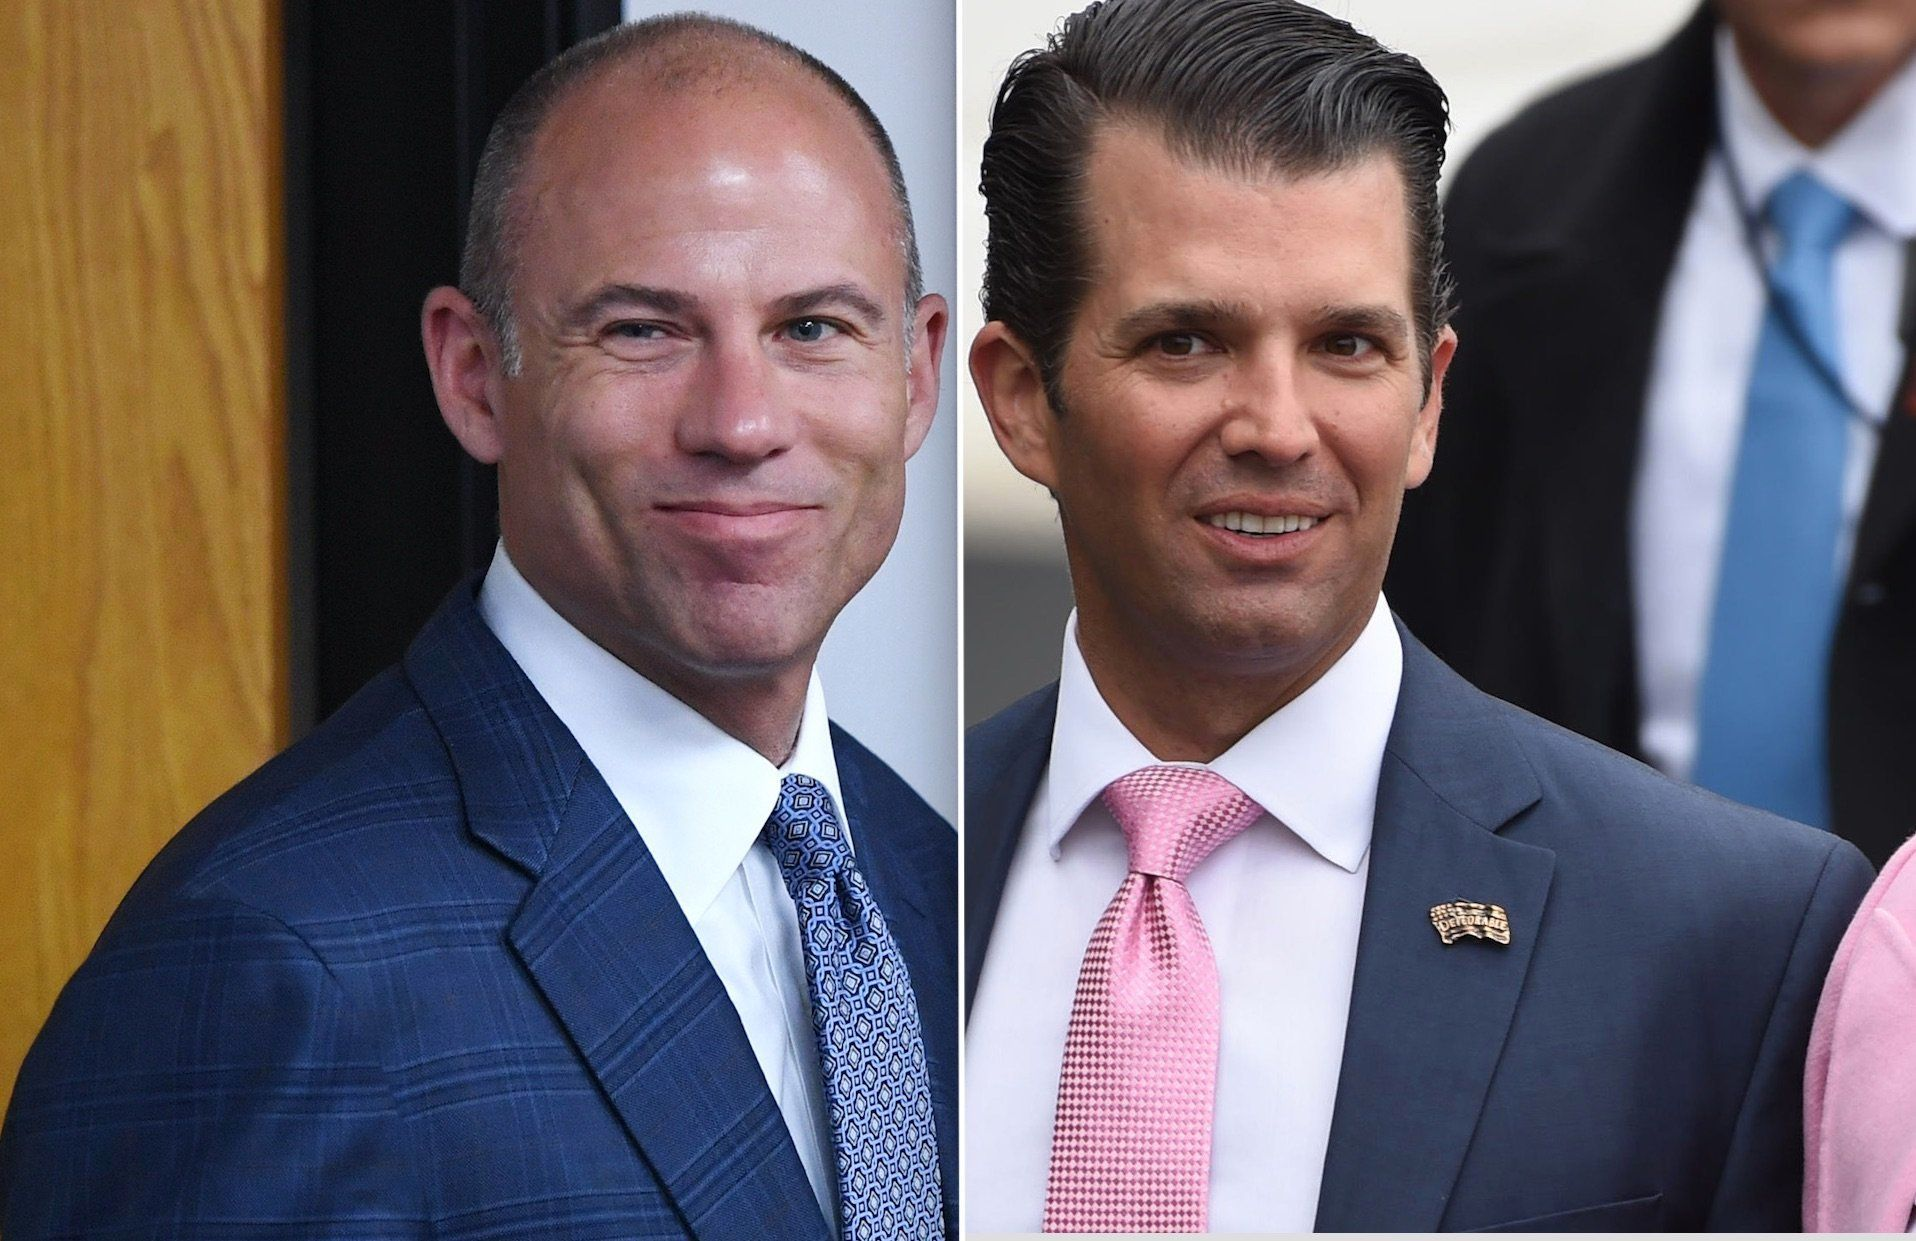 Michael Avenatti Donald Trump Jr